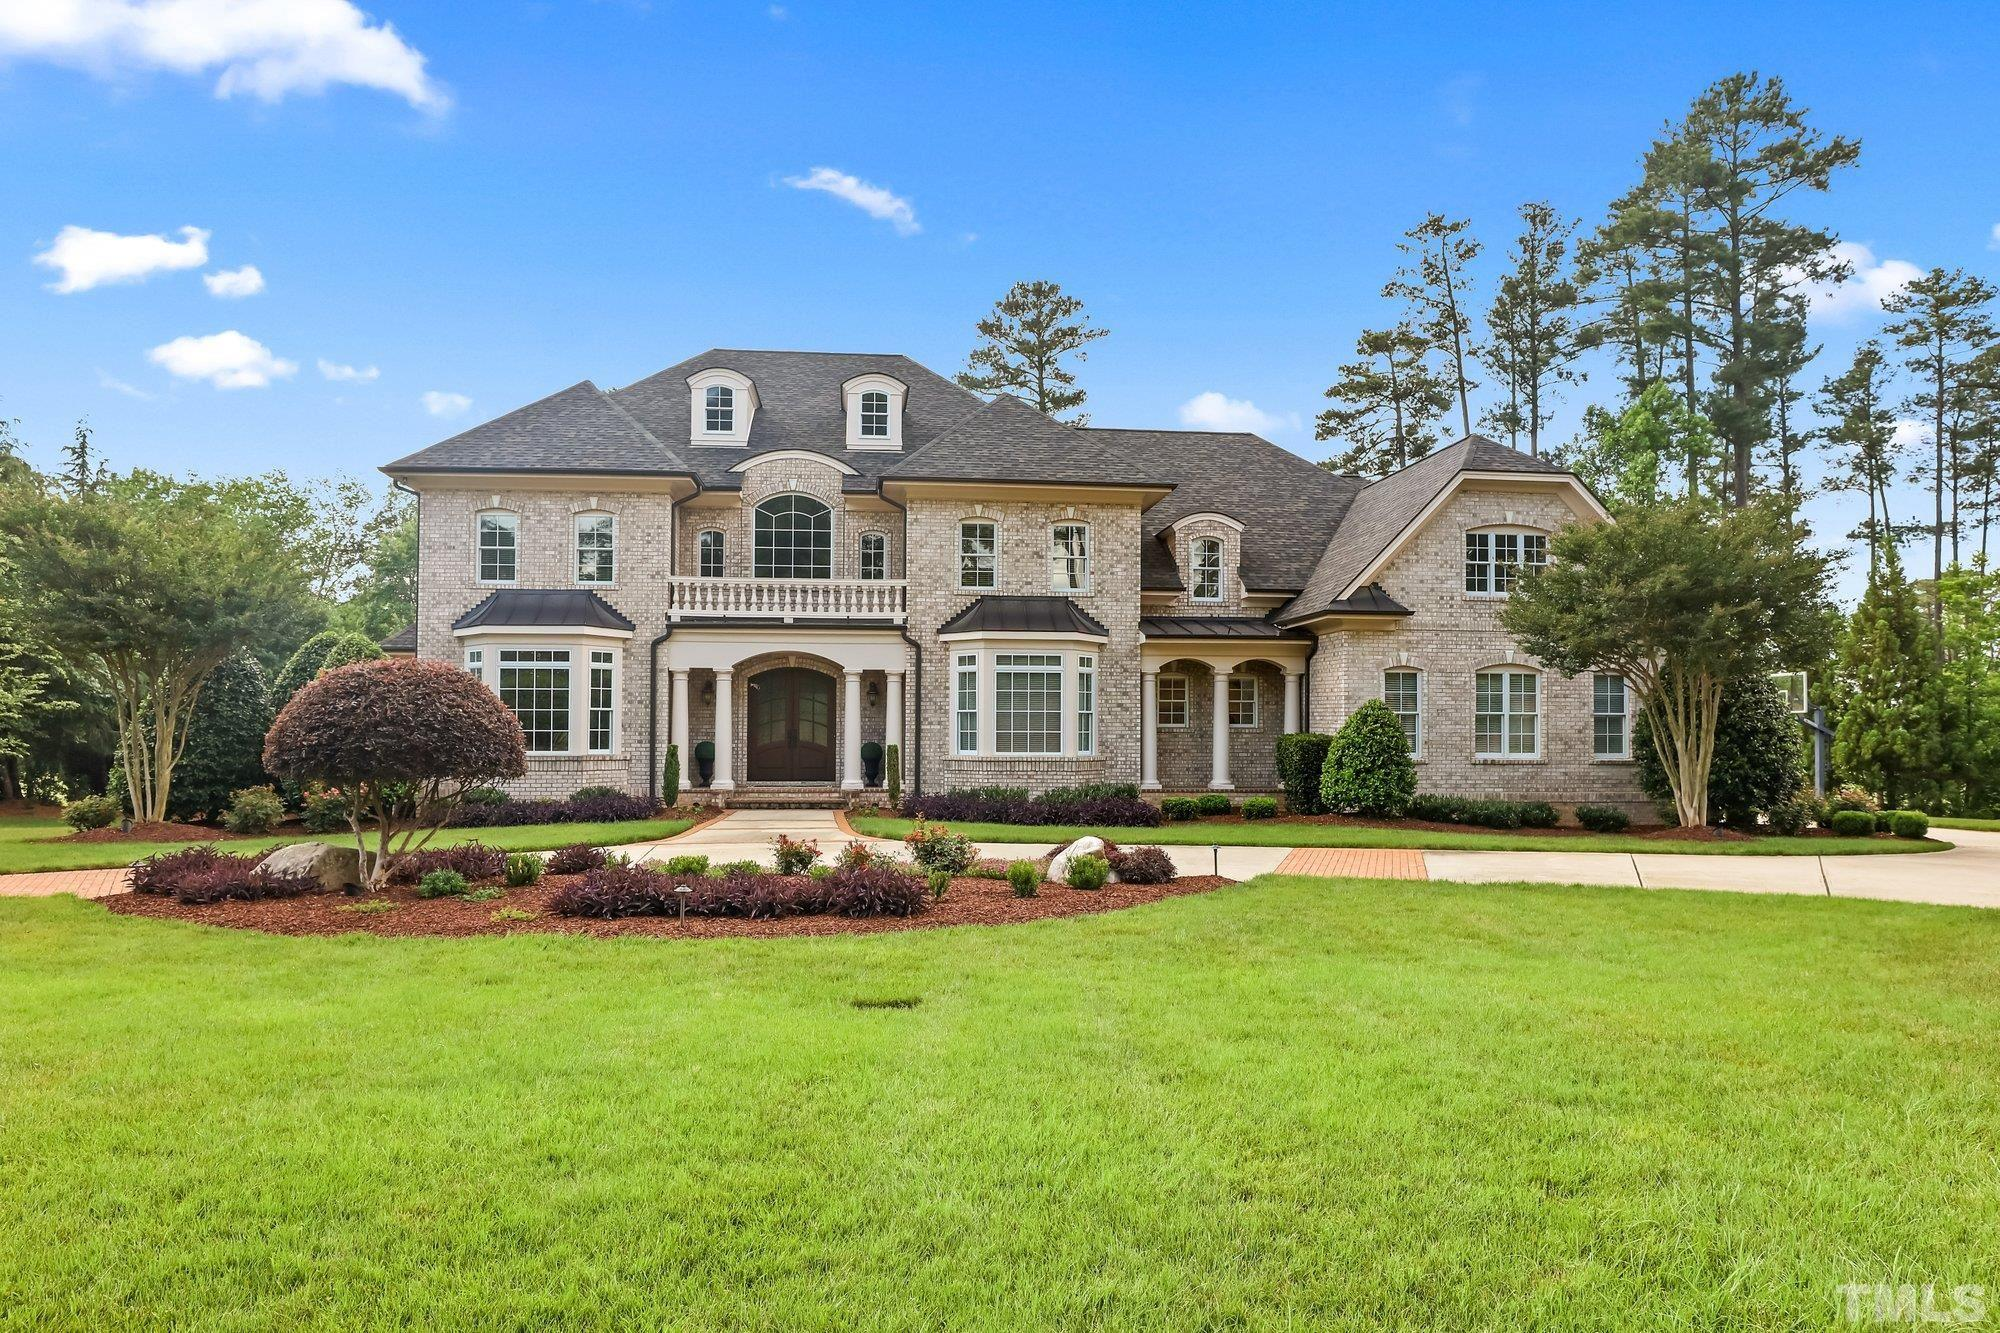 Exceptional 1 acre Golf Course Estate, 5th hole/Highlands in sought after Preston. Rare opportunity to own executive home with unparalleled golf course views. Meticulously maintained, new roof/paint-2020. Open fl plan with gourmet kitchen/large island! 1st fl office.Screened porch. 6B/6Ba on 2nd floor. Finished W/O basement opens to beautiful new stone patio. Theater room. Bar. Guest suite. Enjoy sunsets from multi level outdoor space. 4 car garage. Prime location